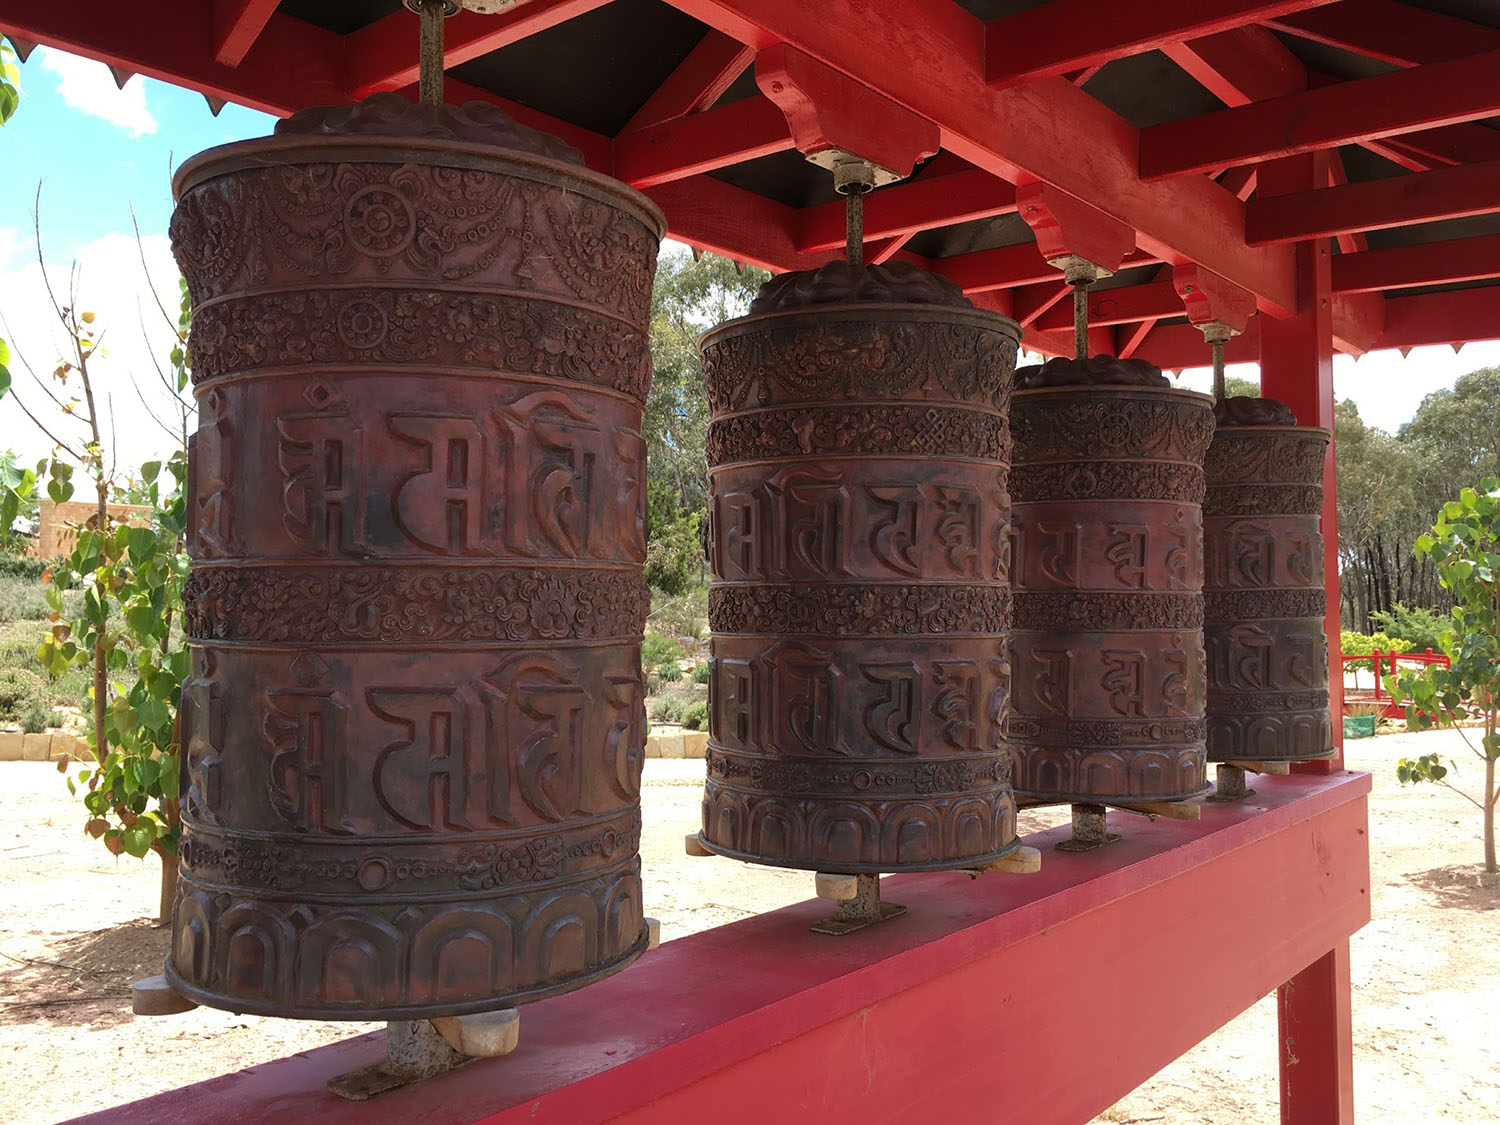 Prayer wheels in Sanskrit; photo by C.Schieve